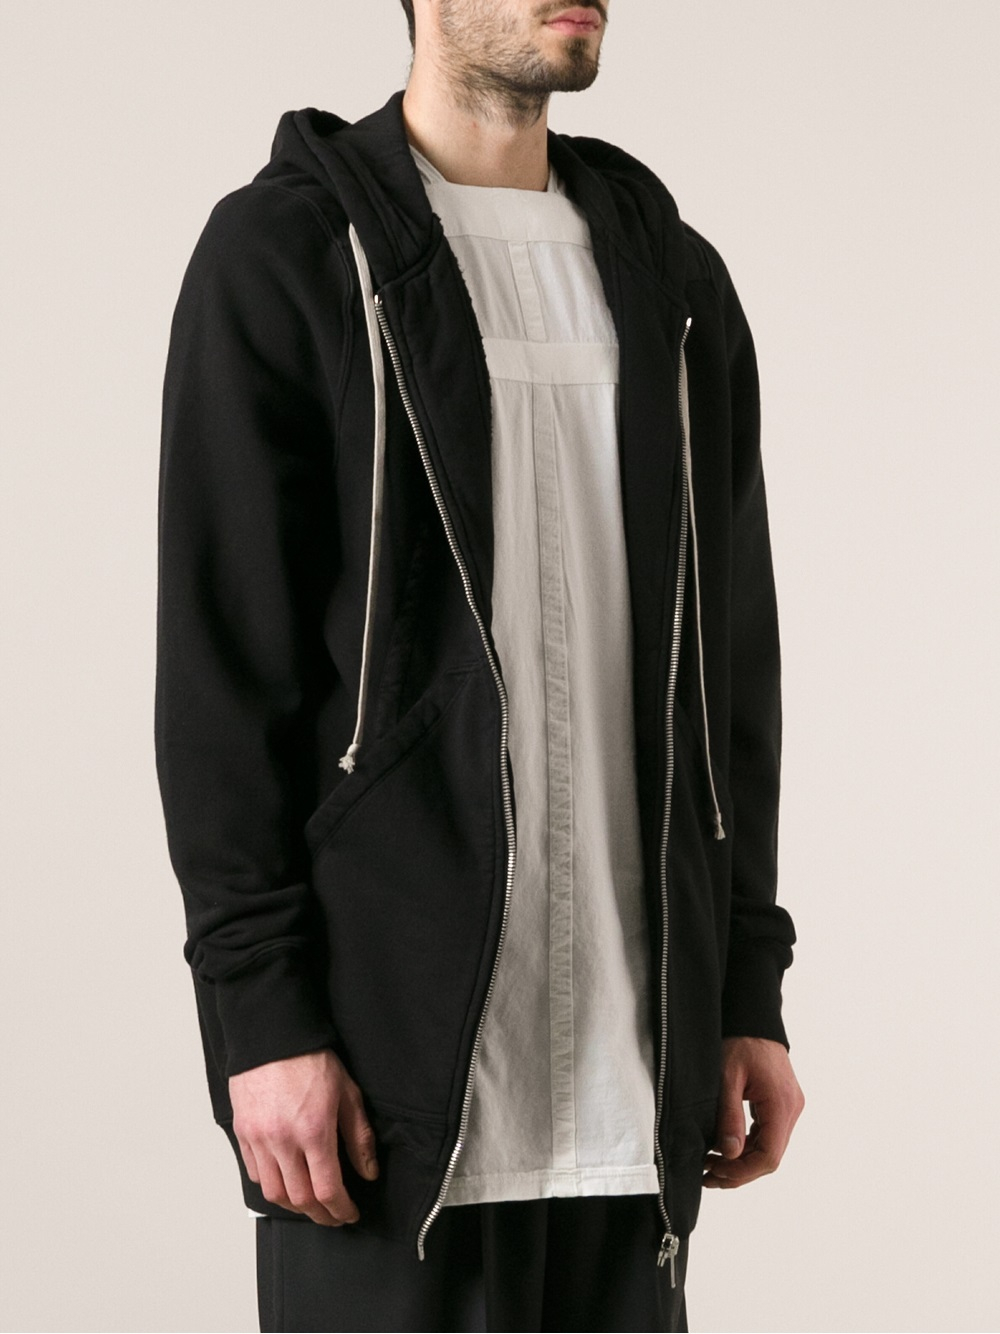 Men's Hooded Parkas Look here for a large selection of hooded parkas for men at bargain prices!